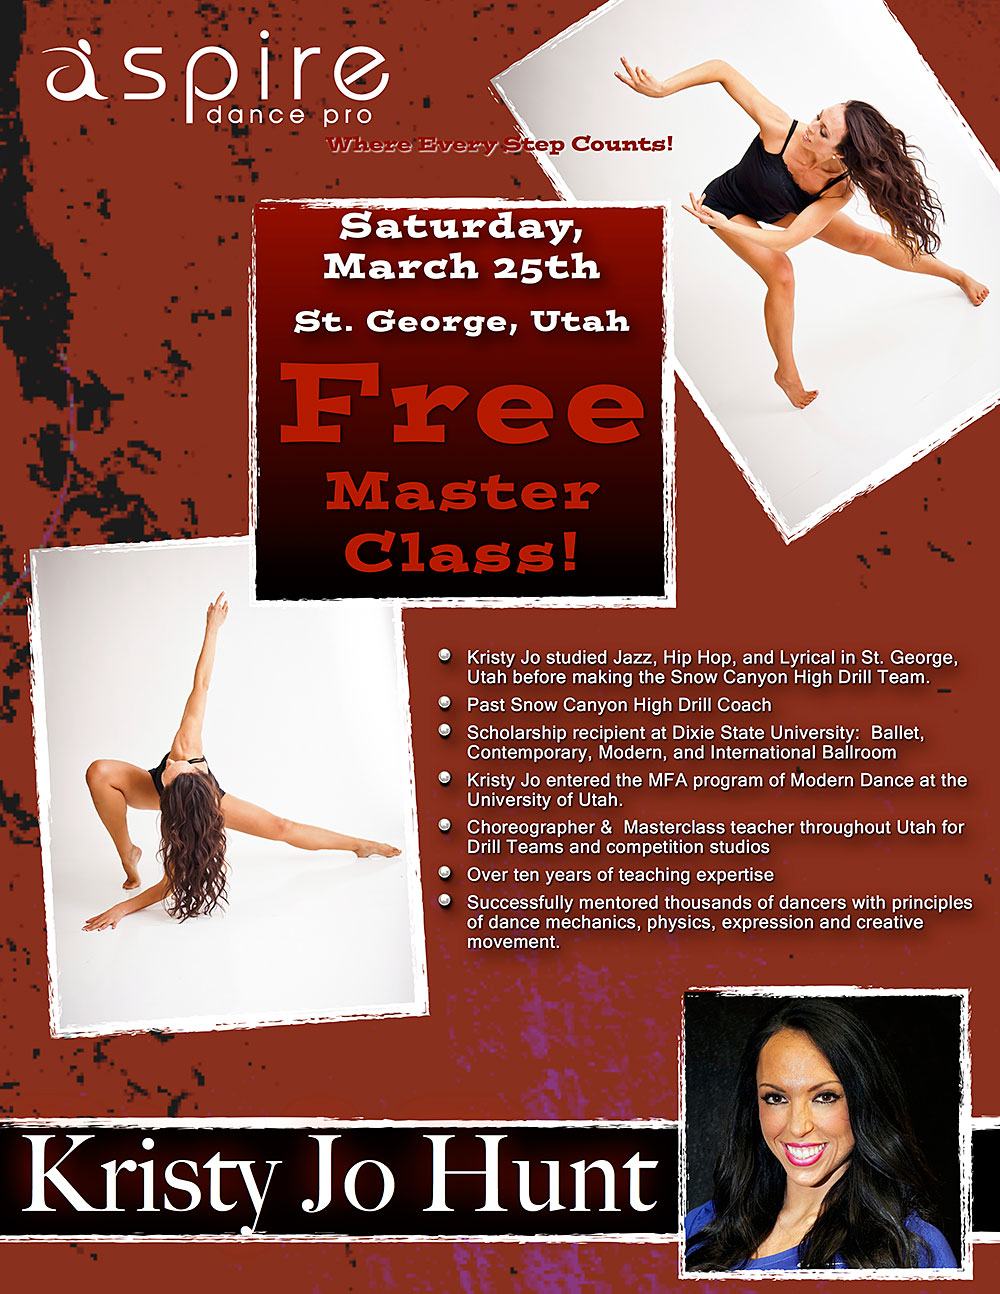 Kristy Jo Hunt - Aspire Dance Pro Competitions Master Class Instructor